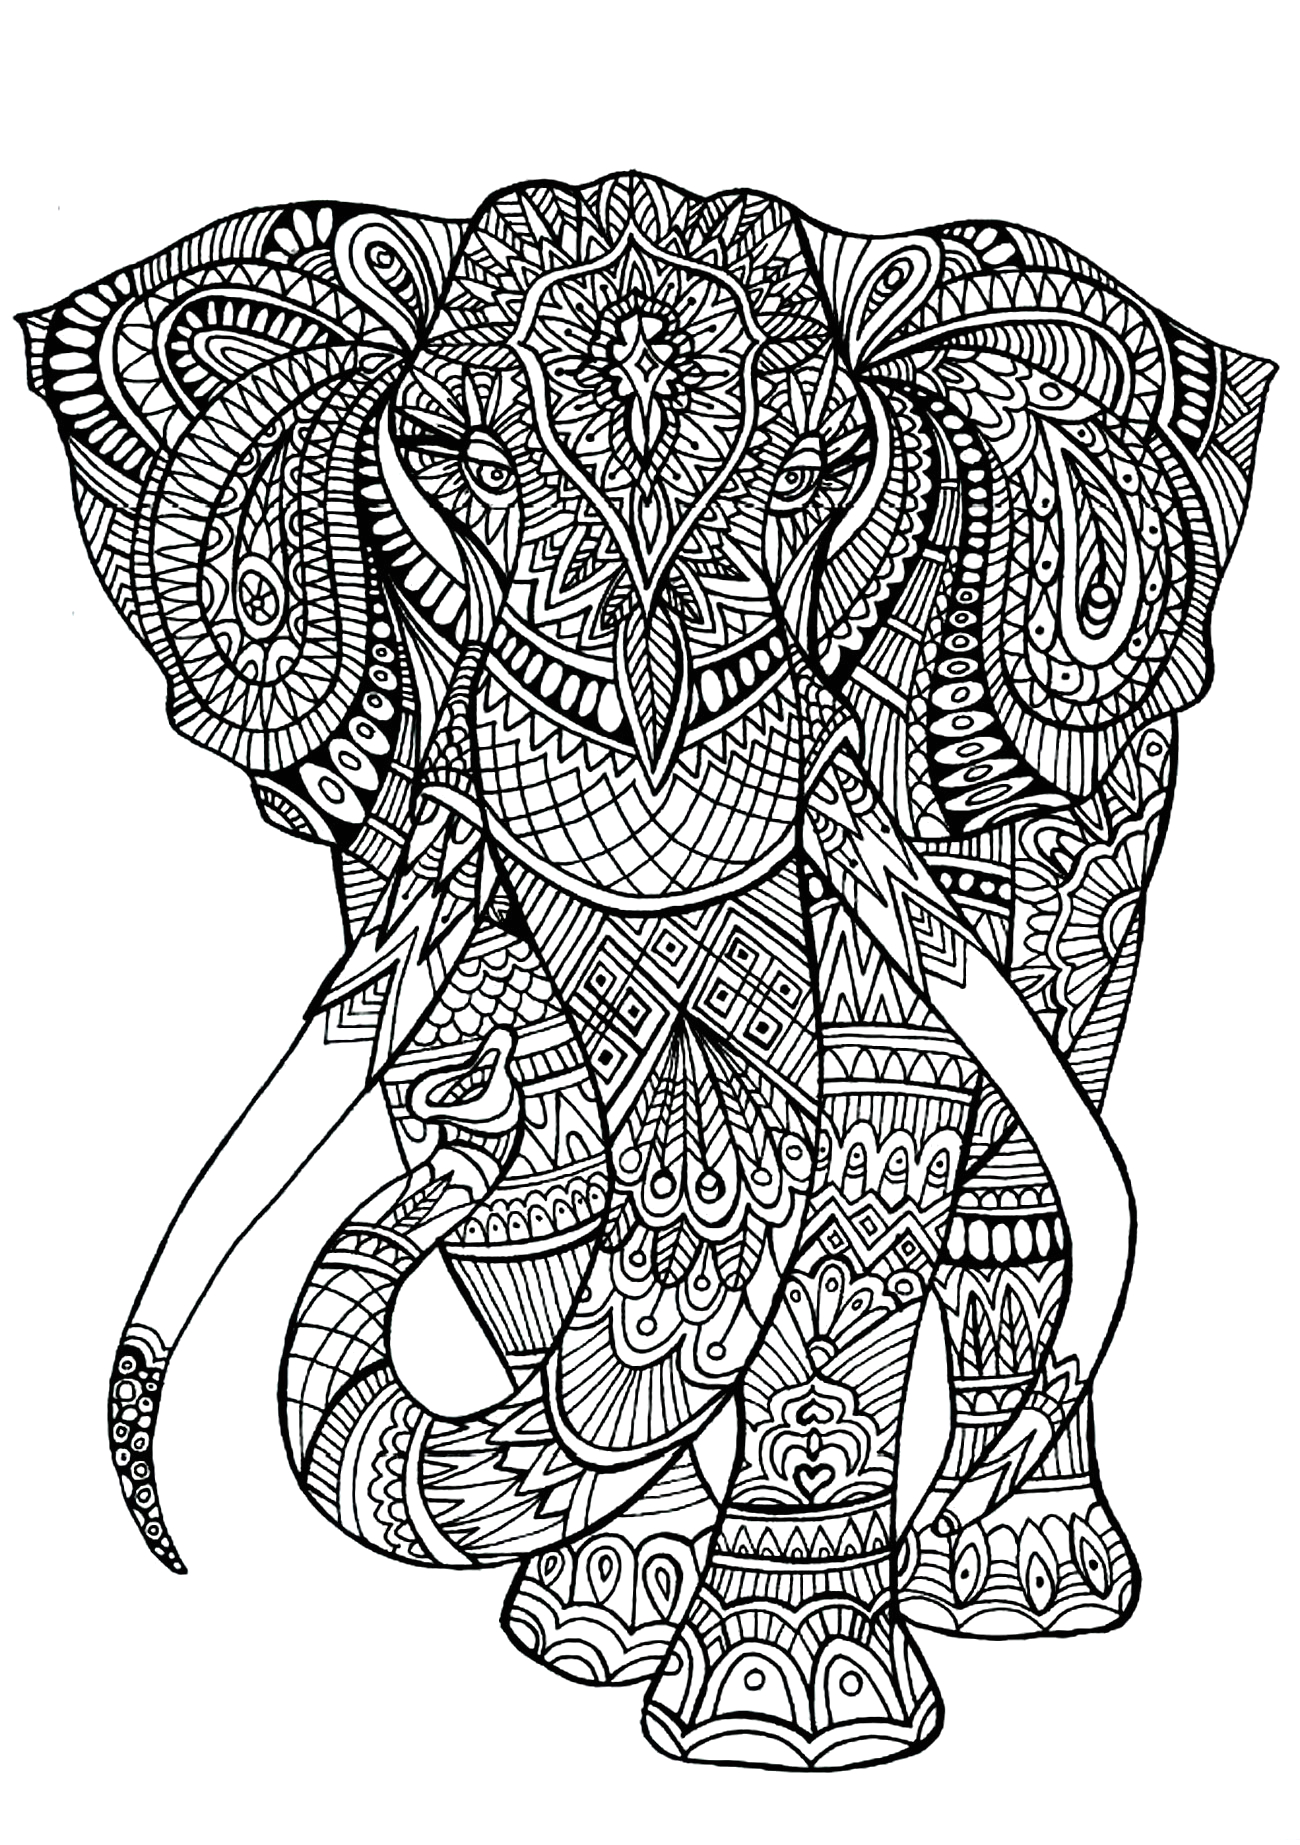 Free Printable Coloring Pages for Adults Animals Elephant Patterns